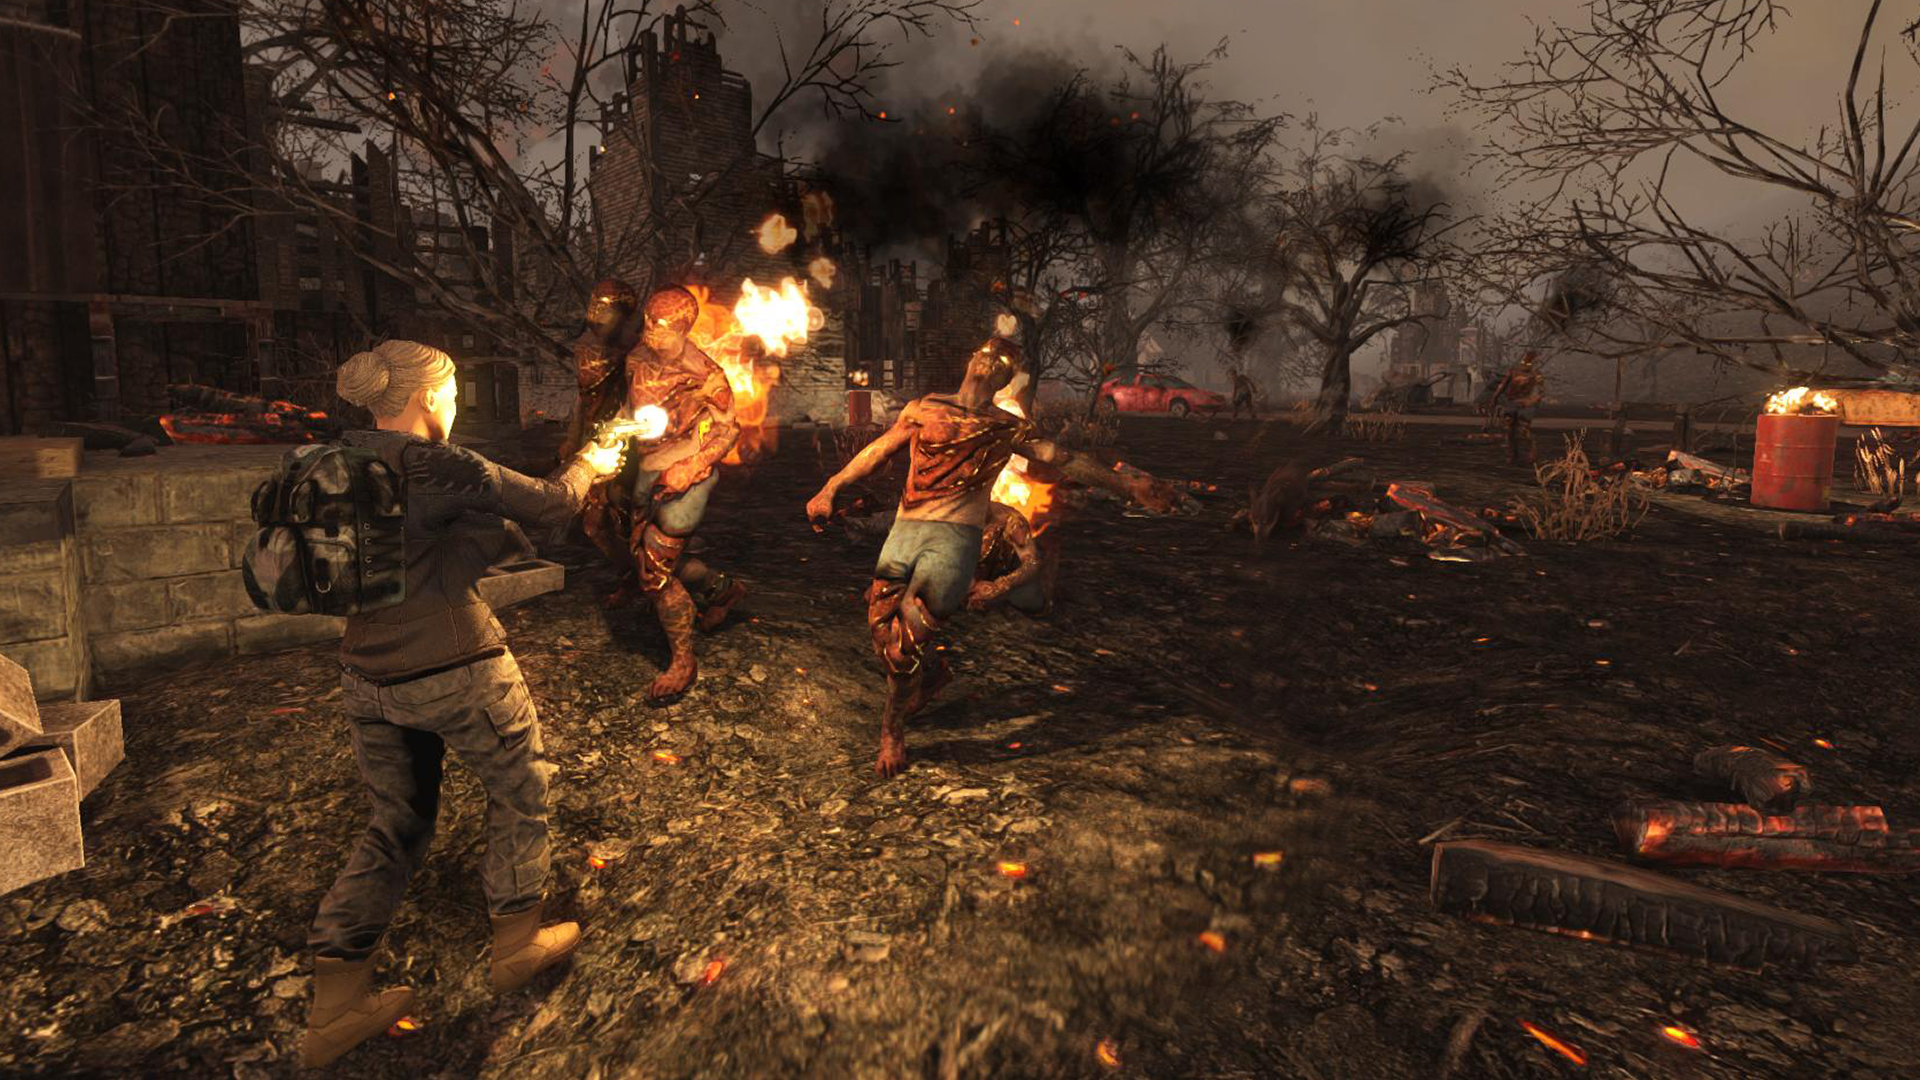 playfrance 7 days to die annonc sur ps4 et xbox one